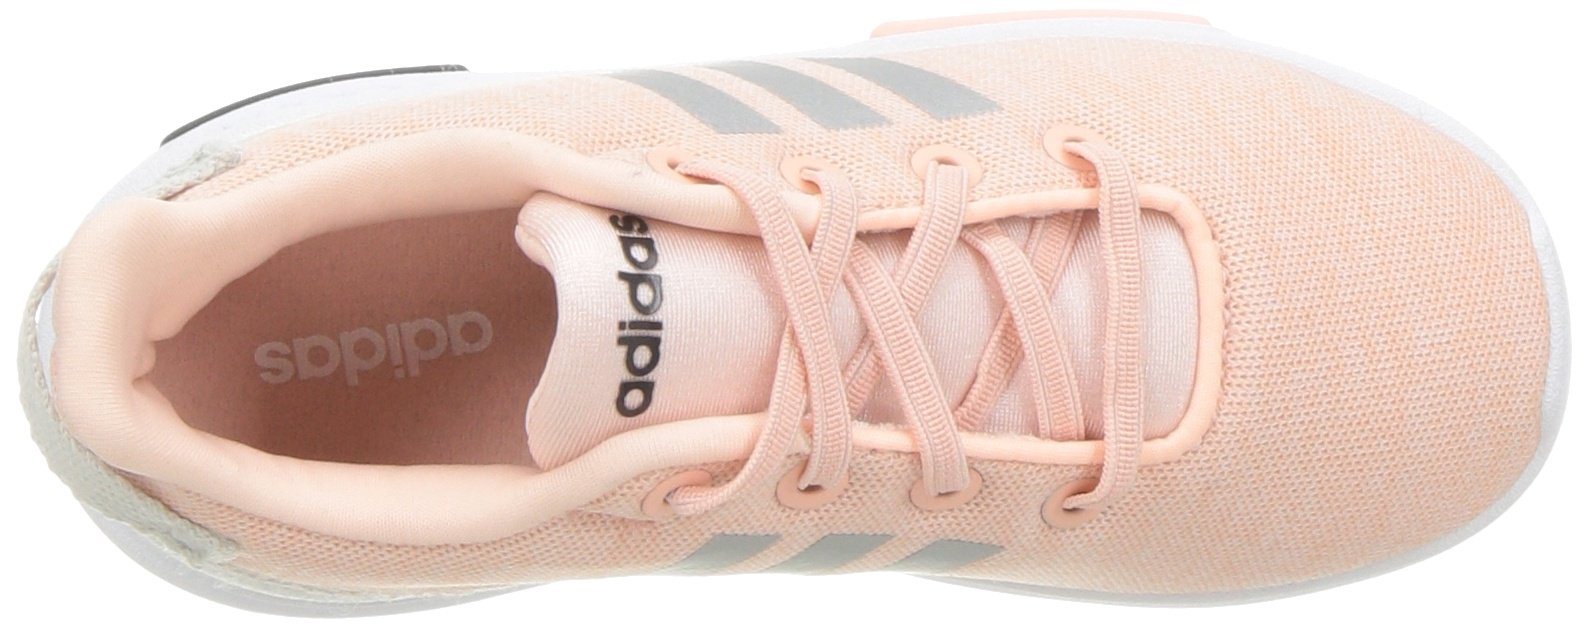 adidas Kids CF Racer TR Running Shoe, Haze Coral/Metallic Silver/White, 4K M US Toddler by adidas (Image #8)